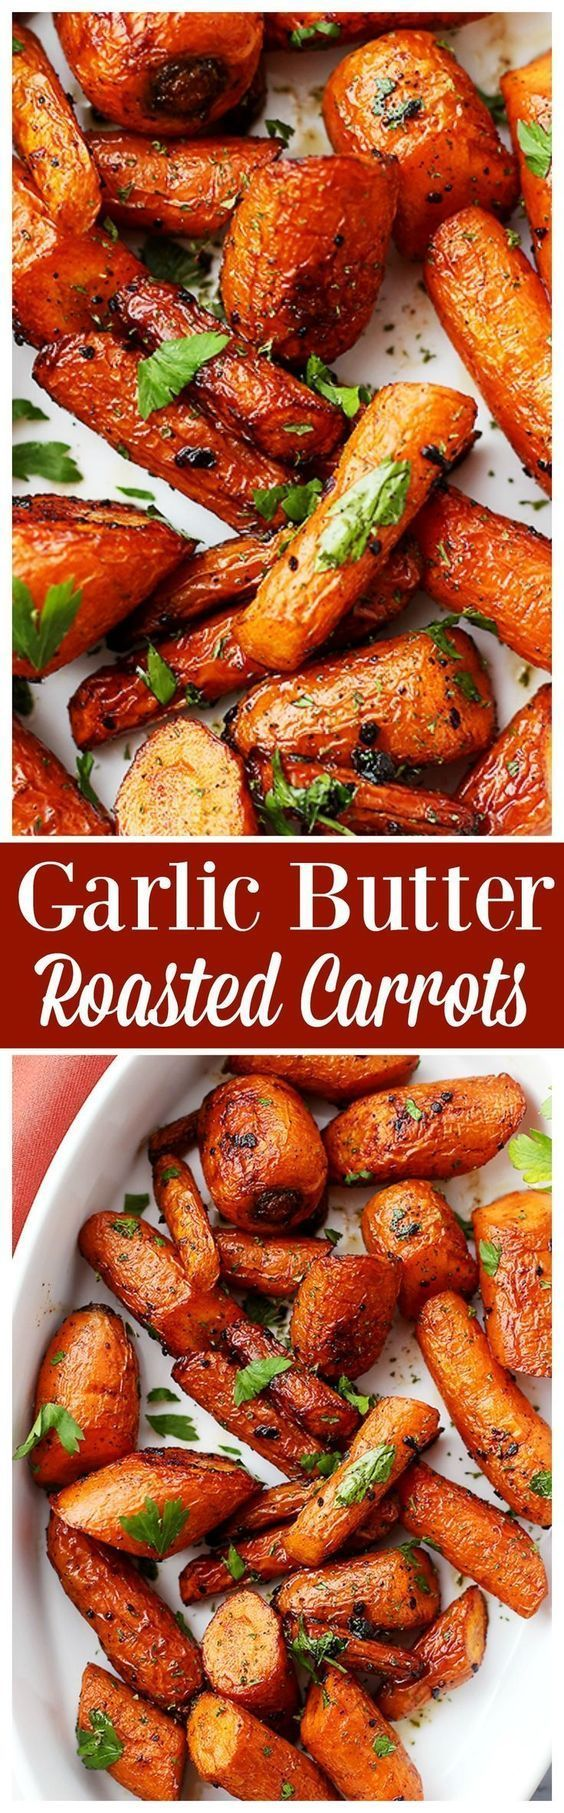 Toss  2 lbs carrots with 5 tablespoons melted butter, 4 garlic minced cloves, salt & pepper.   Arrange in one layer and bake in 425F oven for 22 to 30 minutes, or until carrots are tender.